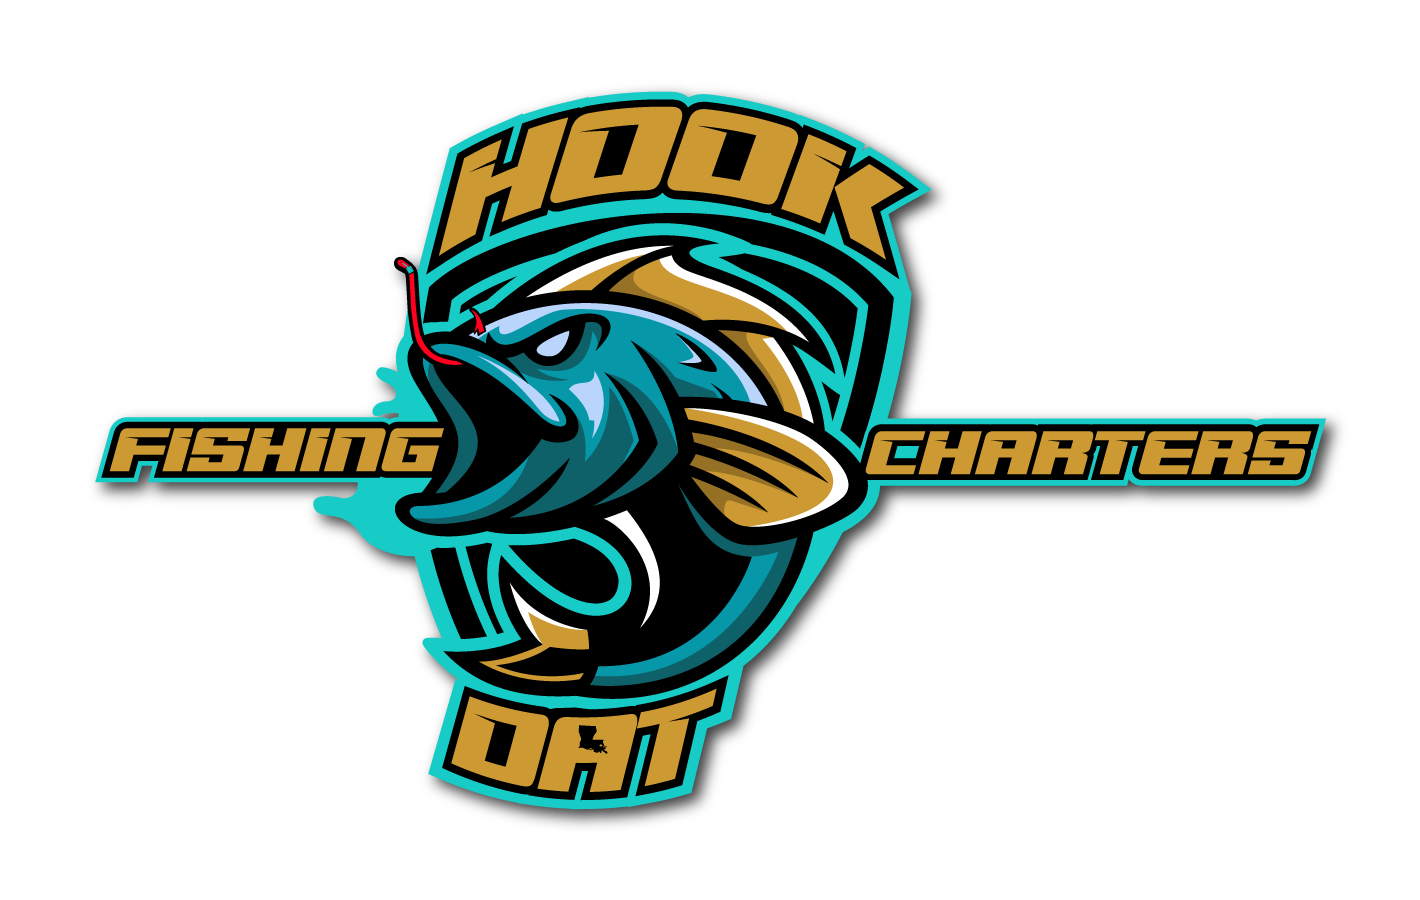 Hook Dat Fishing Charters logo